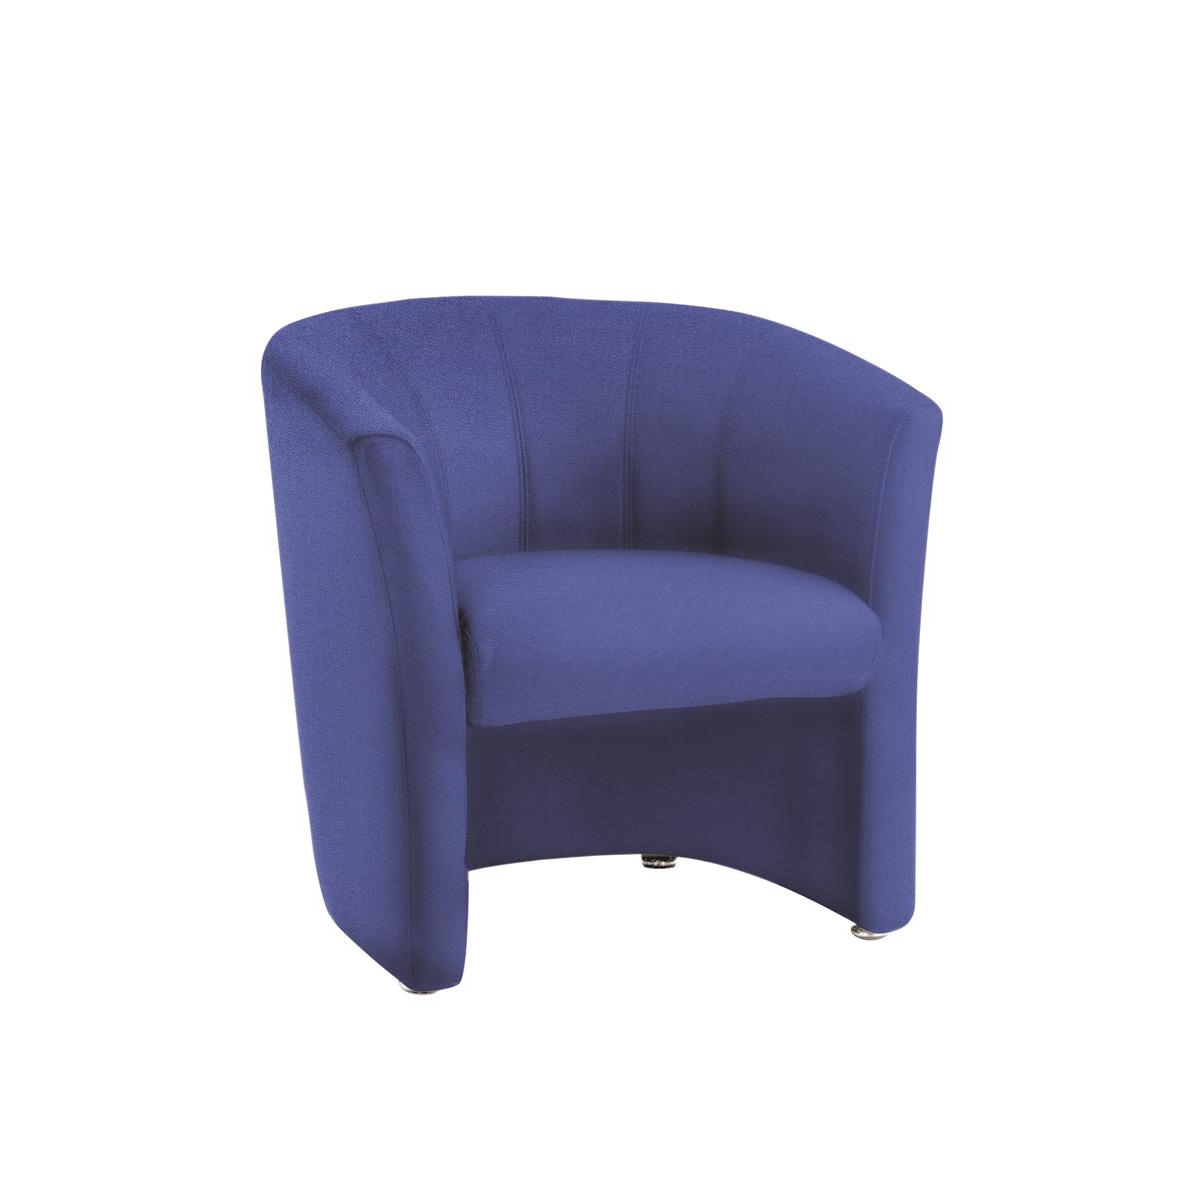 Trexus Tub Arm Chair Blue 450x480x460mm Ref BR000101